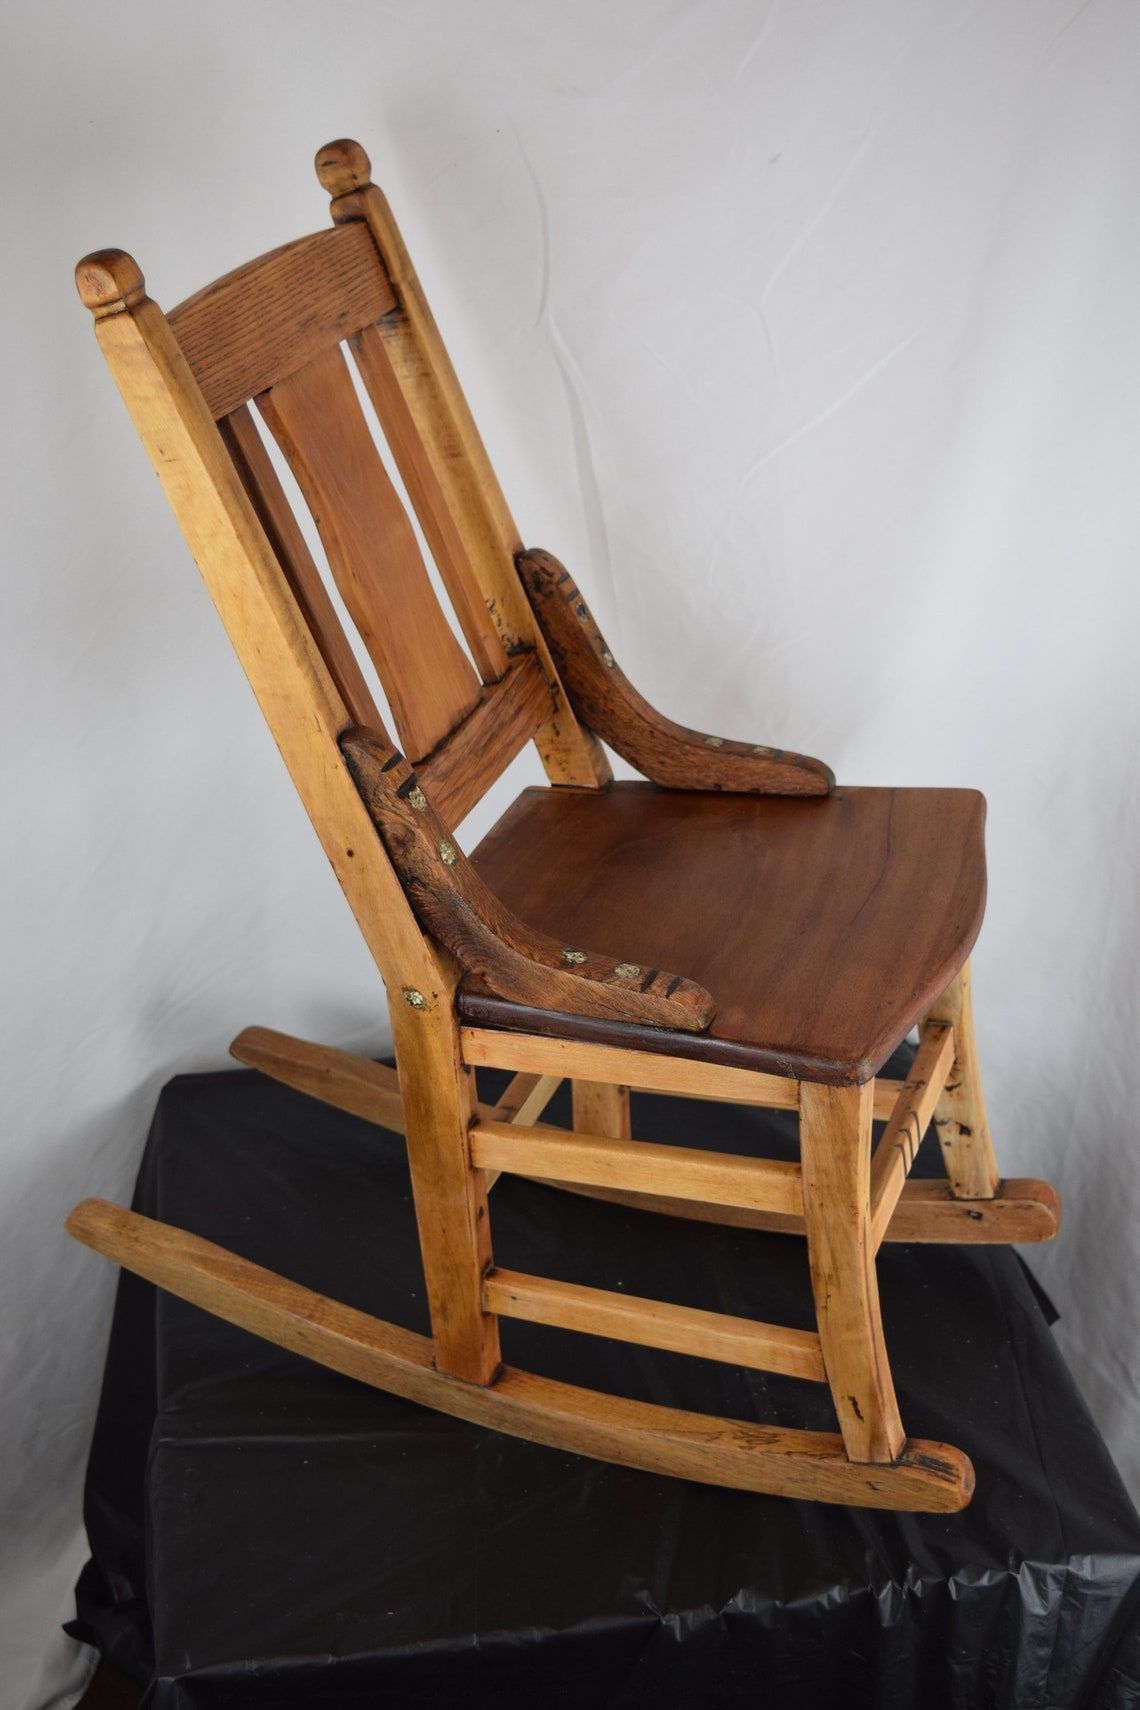 Antique Child's Rocking Chair - Reclaimed Hardwood with a Windsor Back